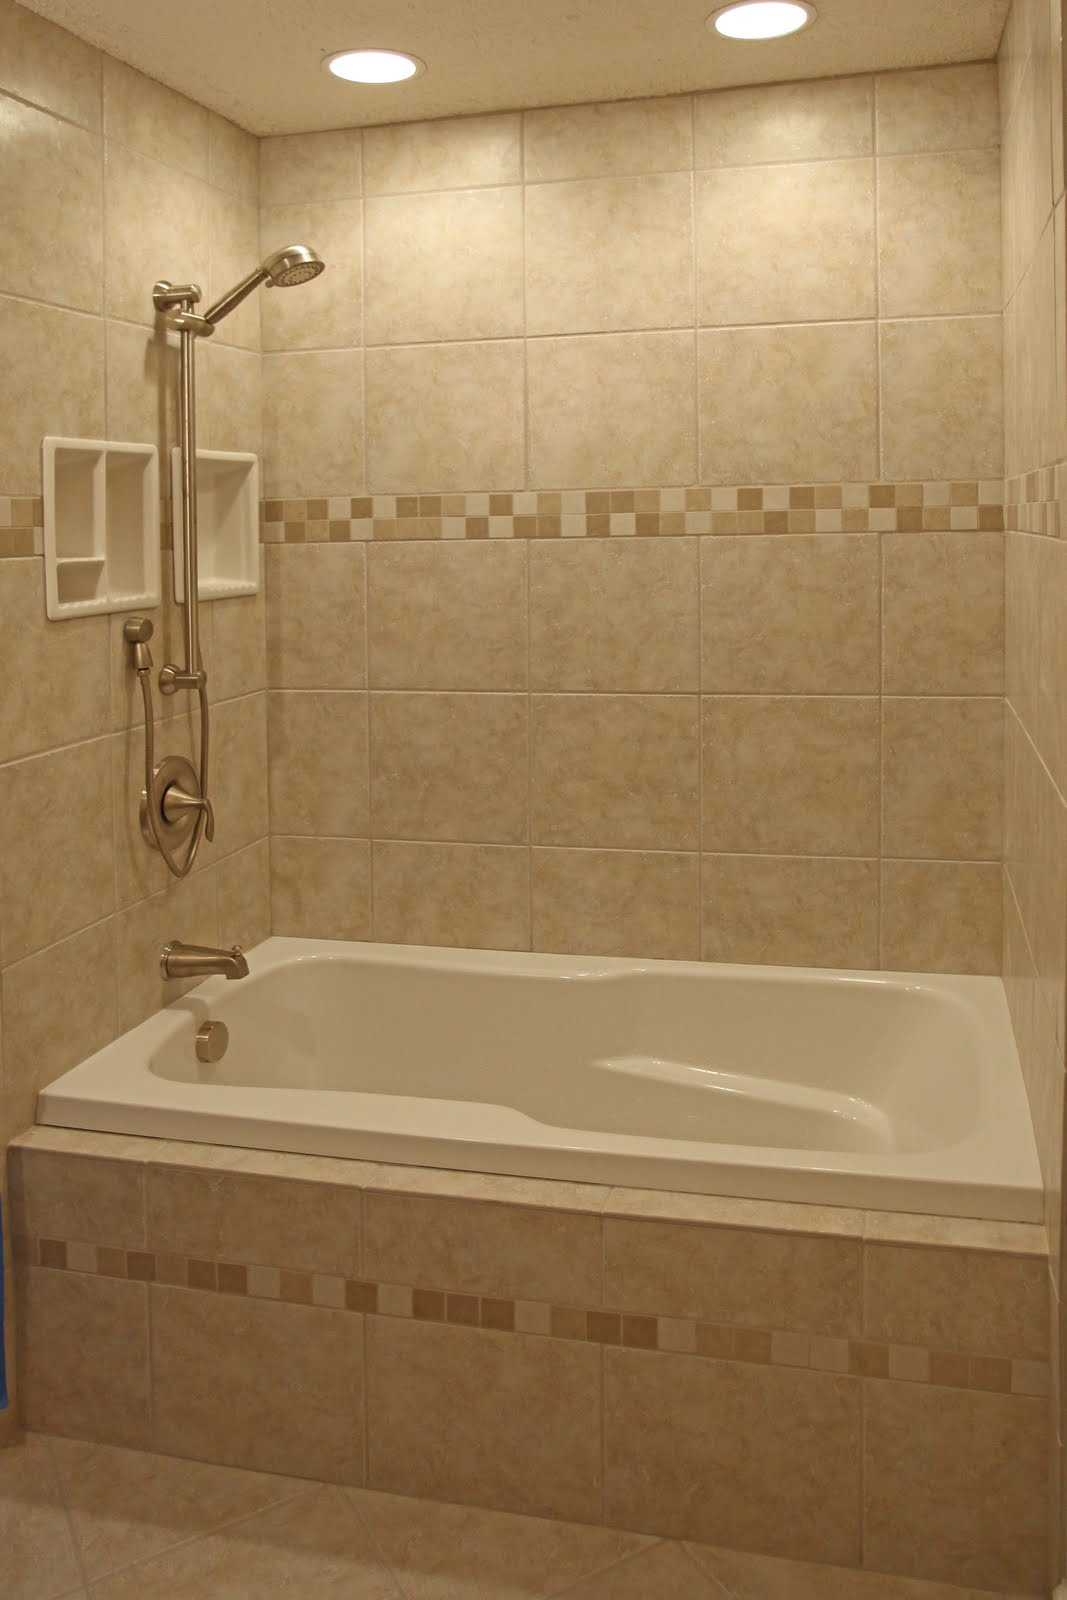 Bathroom remodeling design ideas tile shower niches for Tile designs in bathroom